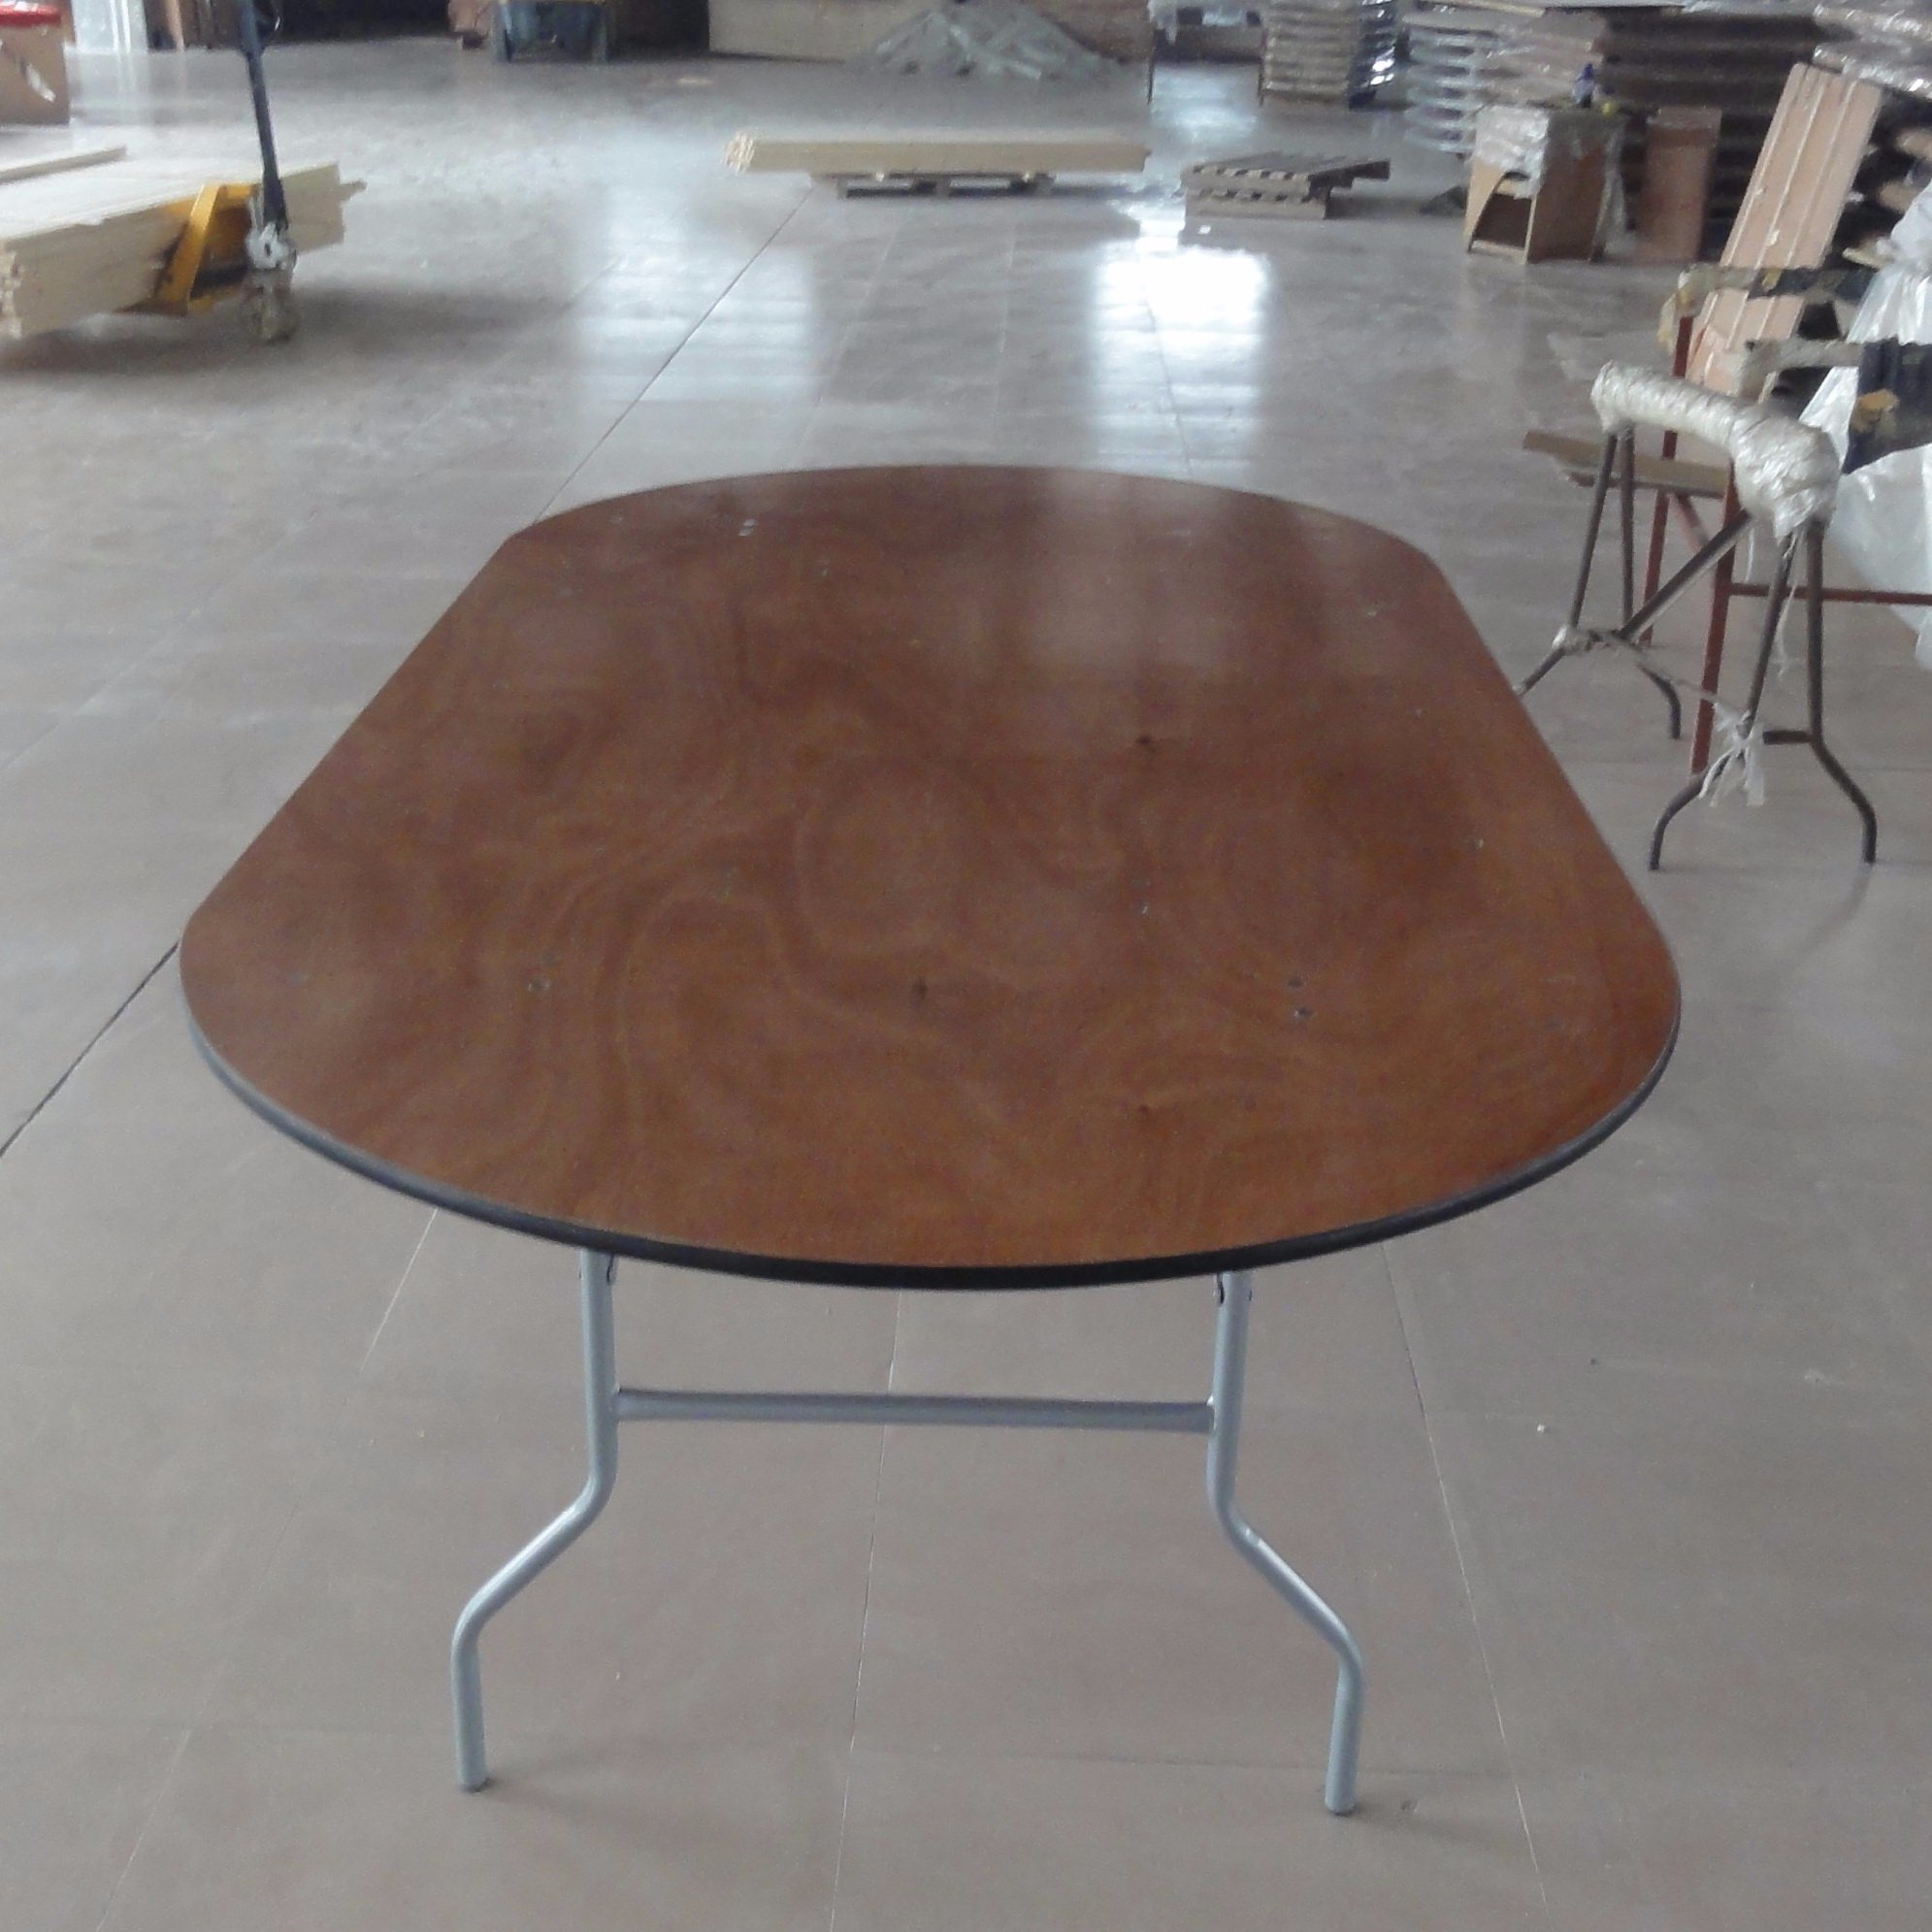 Peachy Hot Item Wholesale Plywood Banquet Round Folding Tables Restaurant Table Download Free Architecture Designs Grimeyleaguecom